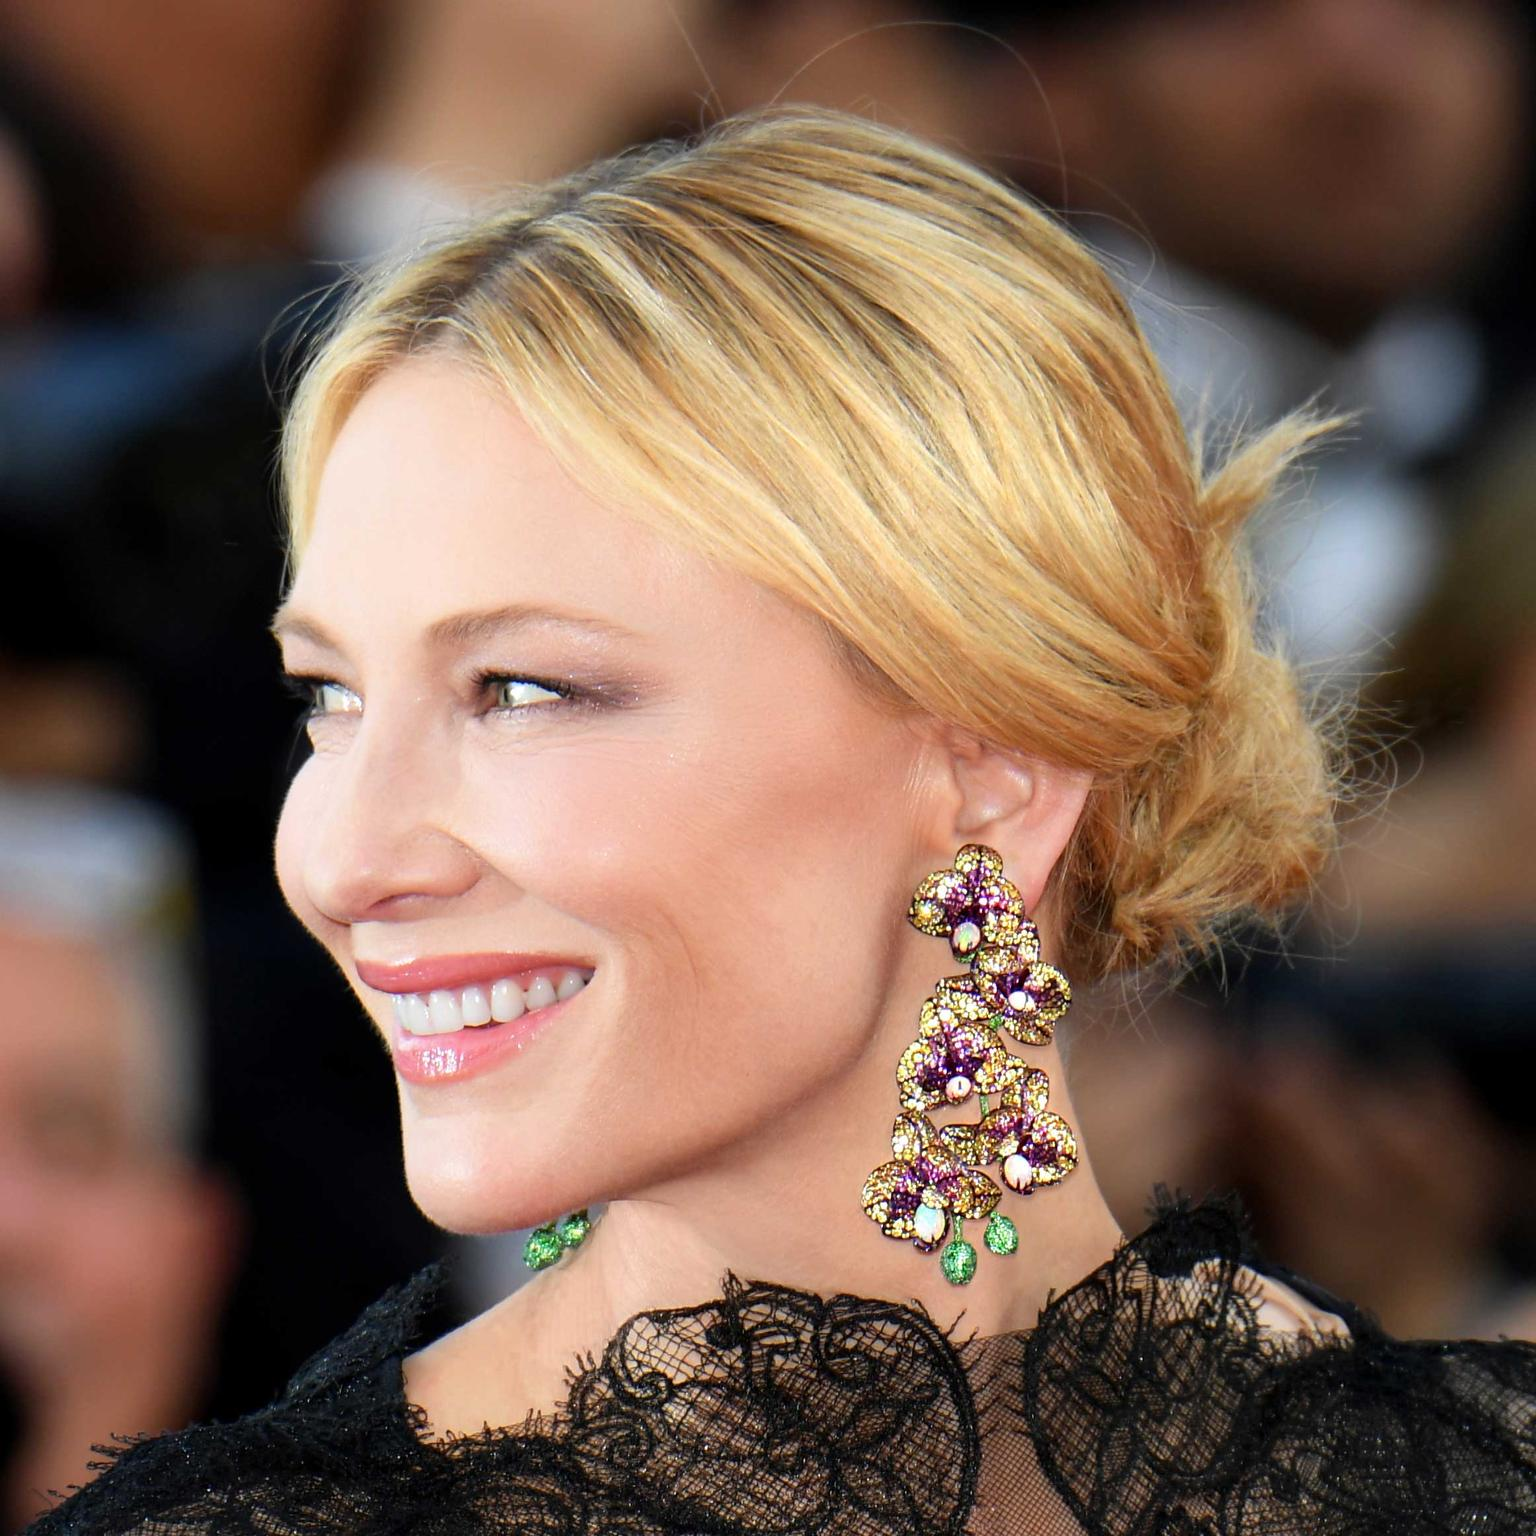 Cate Blanchett in Chopard Orchid earrings at Cannes Film Festival 2018